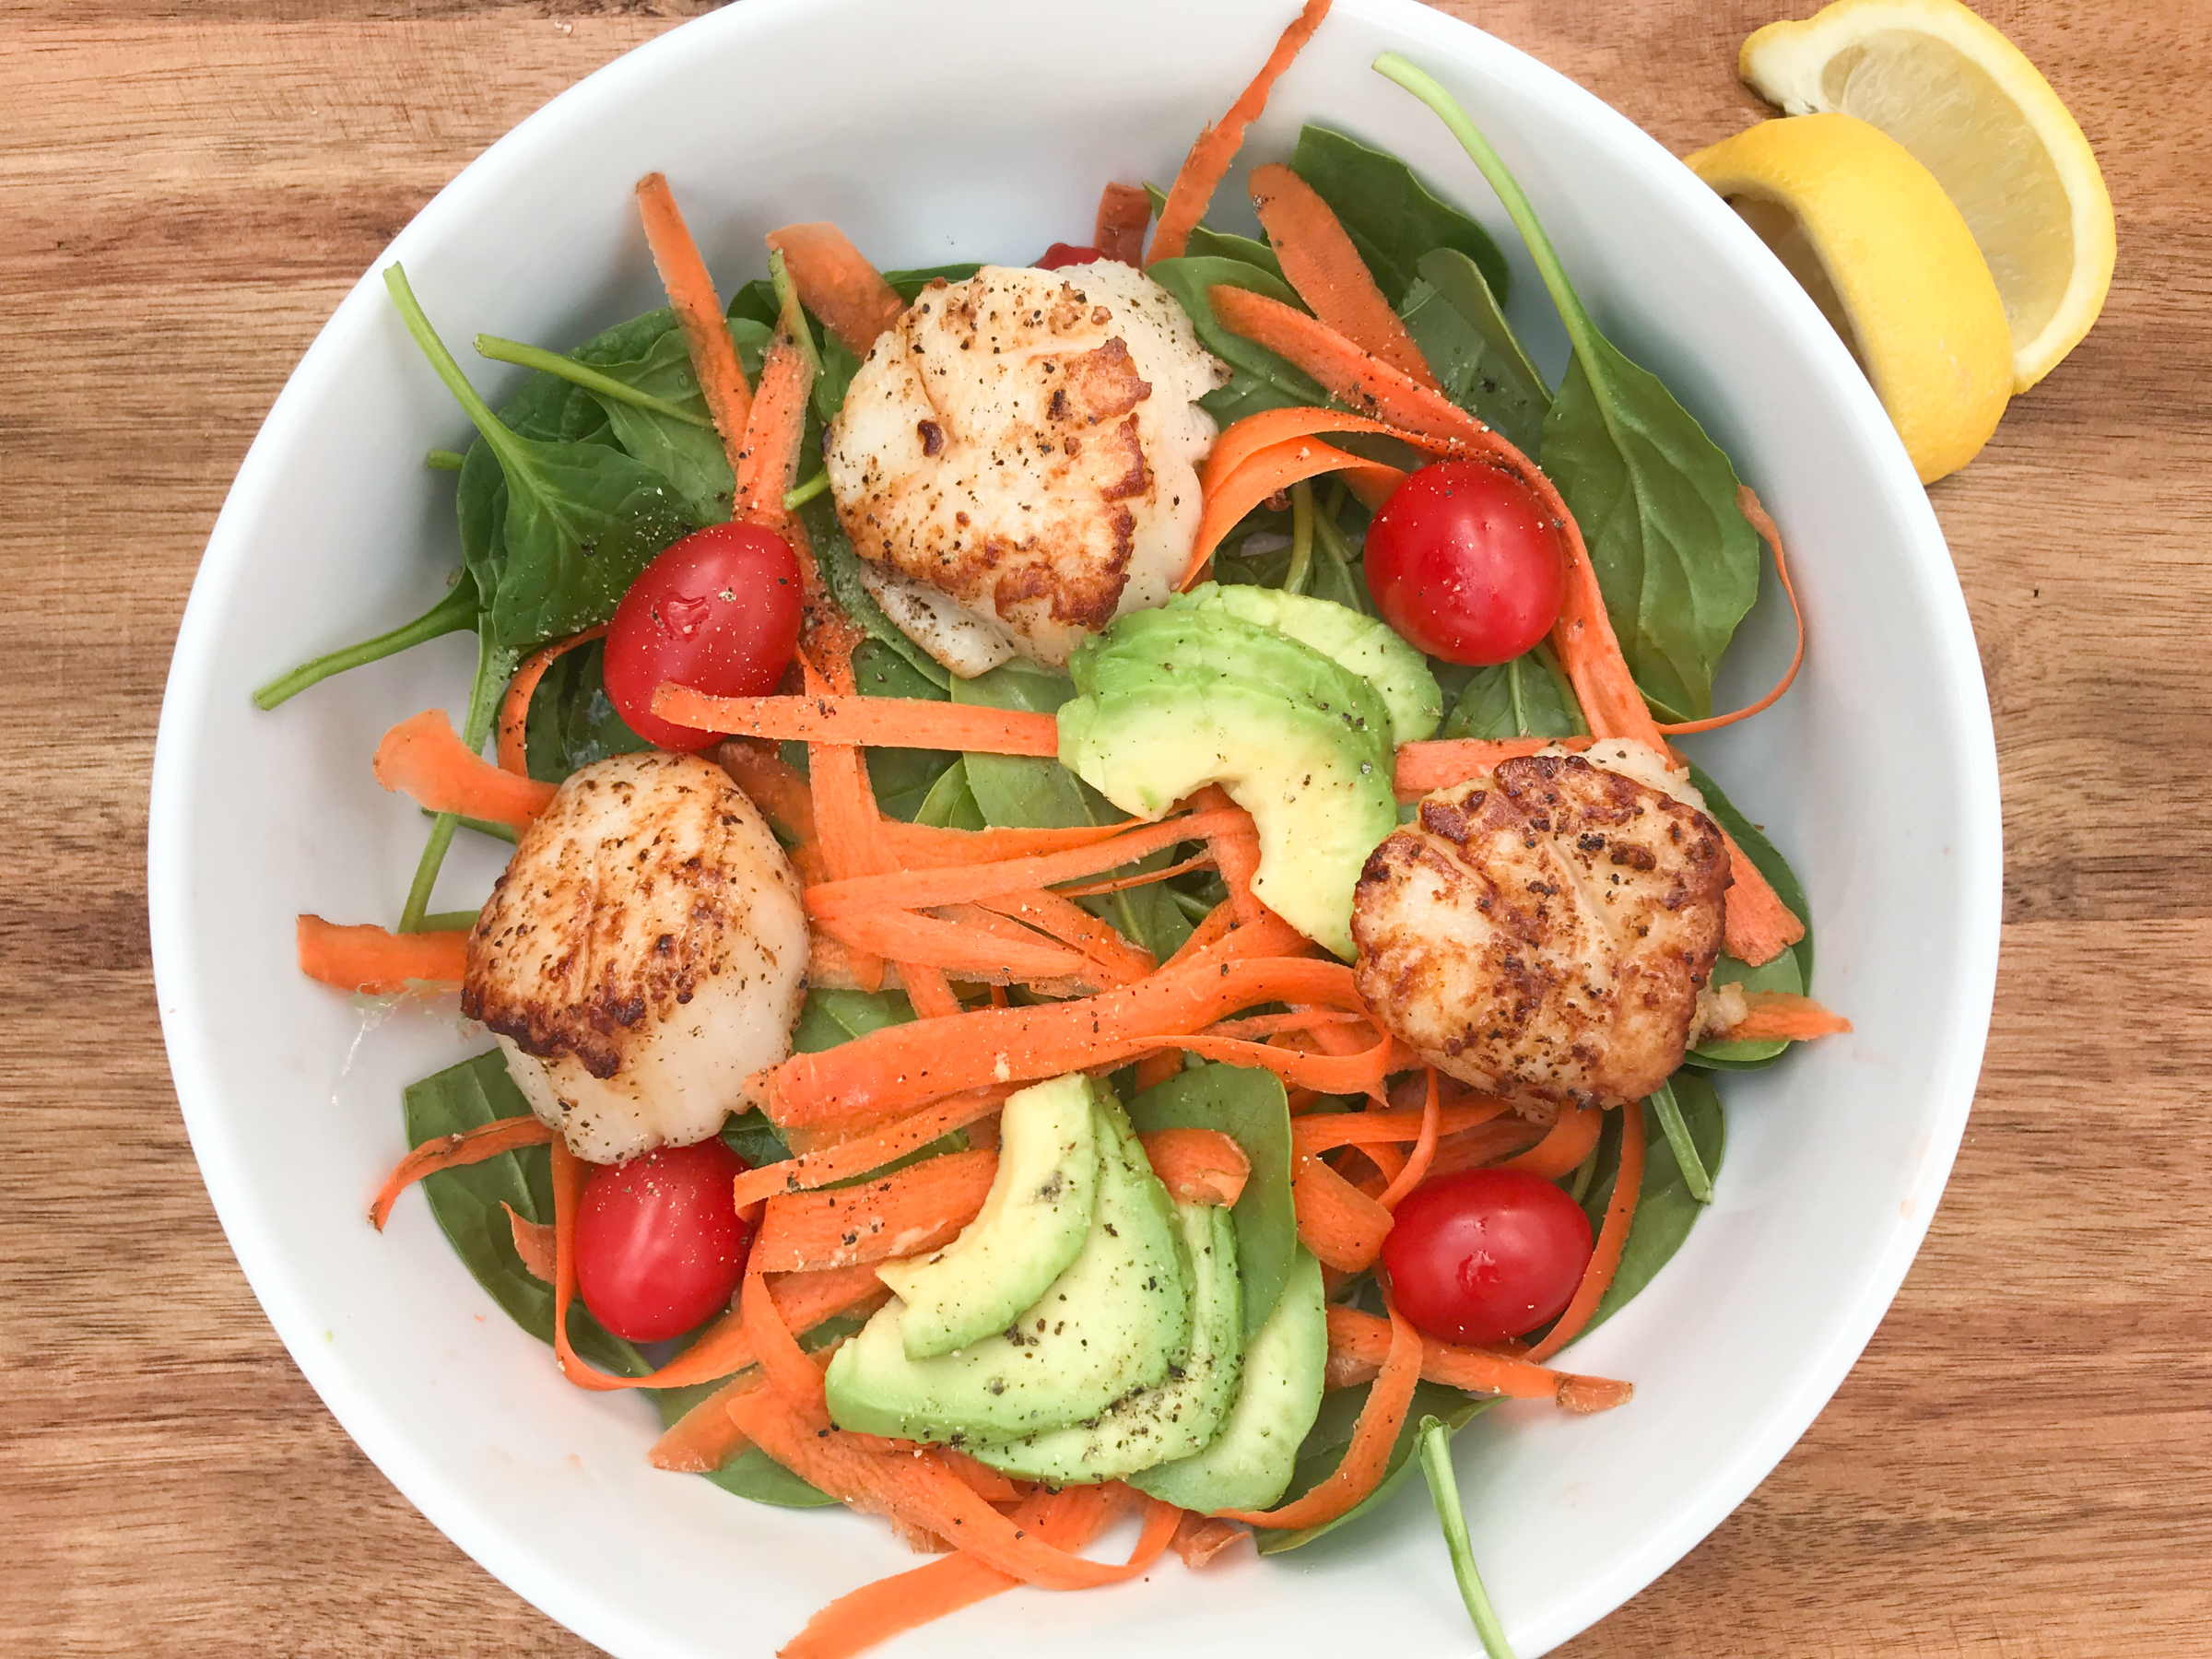 Seared Scallops spinach salad - Low Carb - Paleo- Gluten Free- FWTFL, Keto